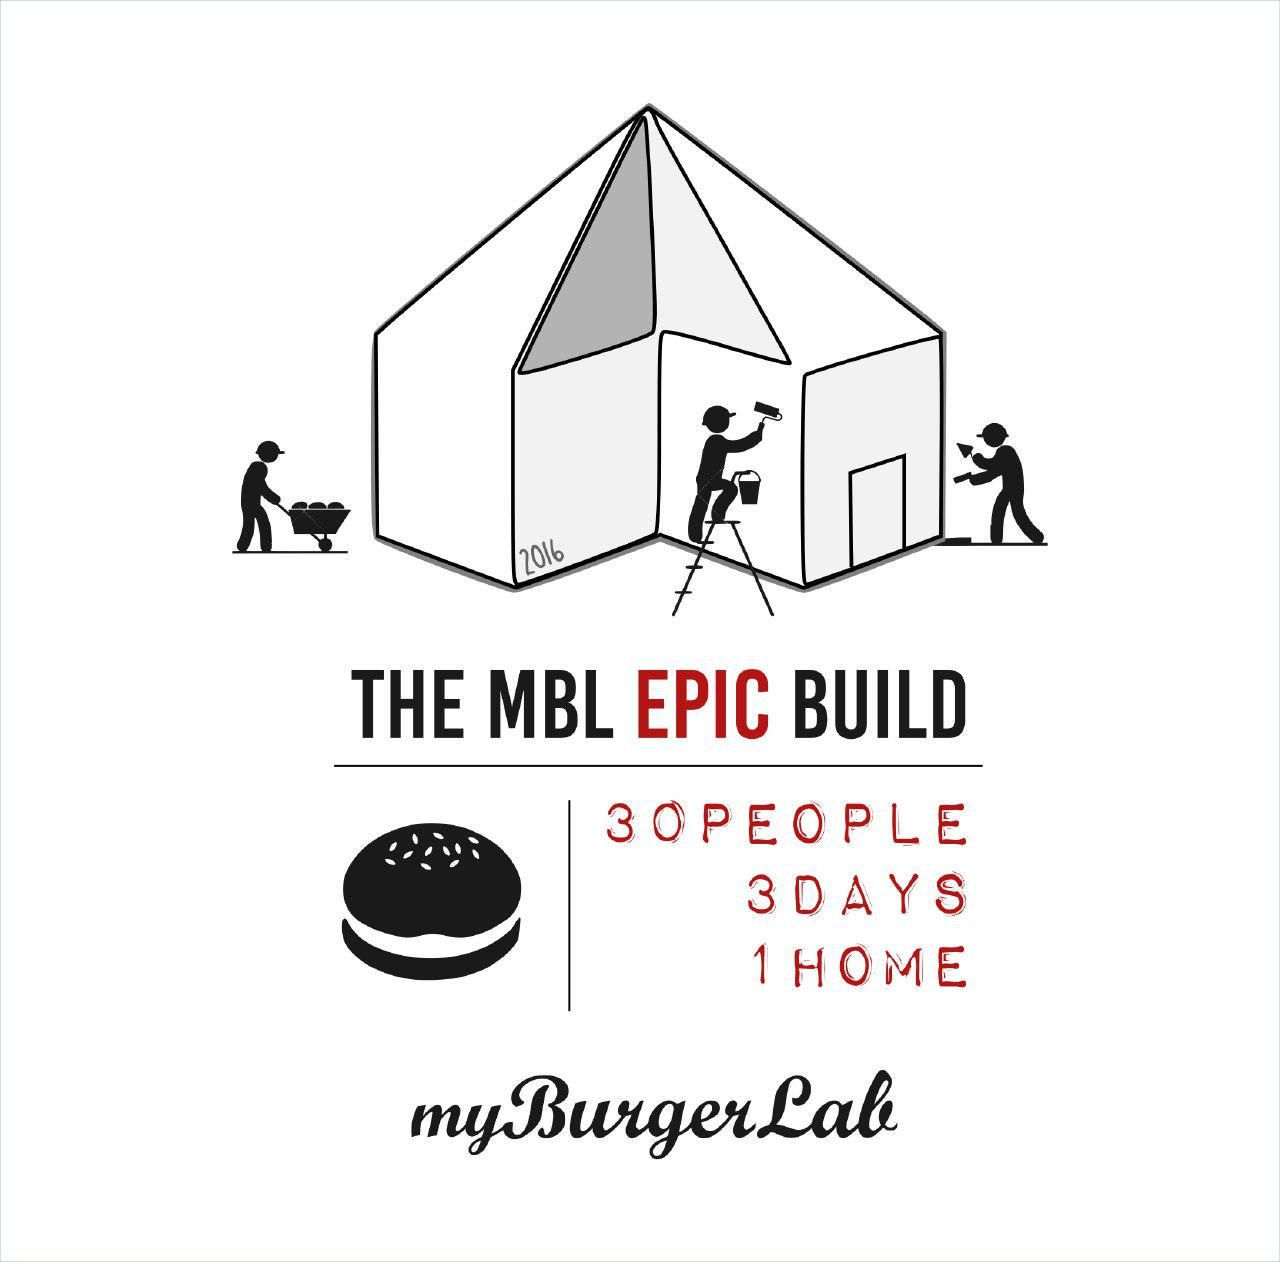 MBL Epic Build